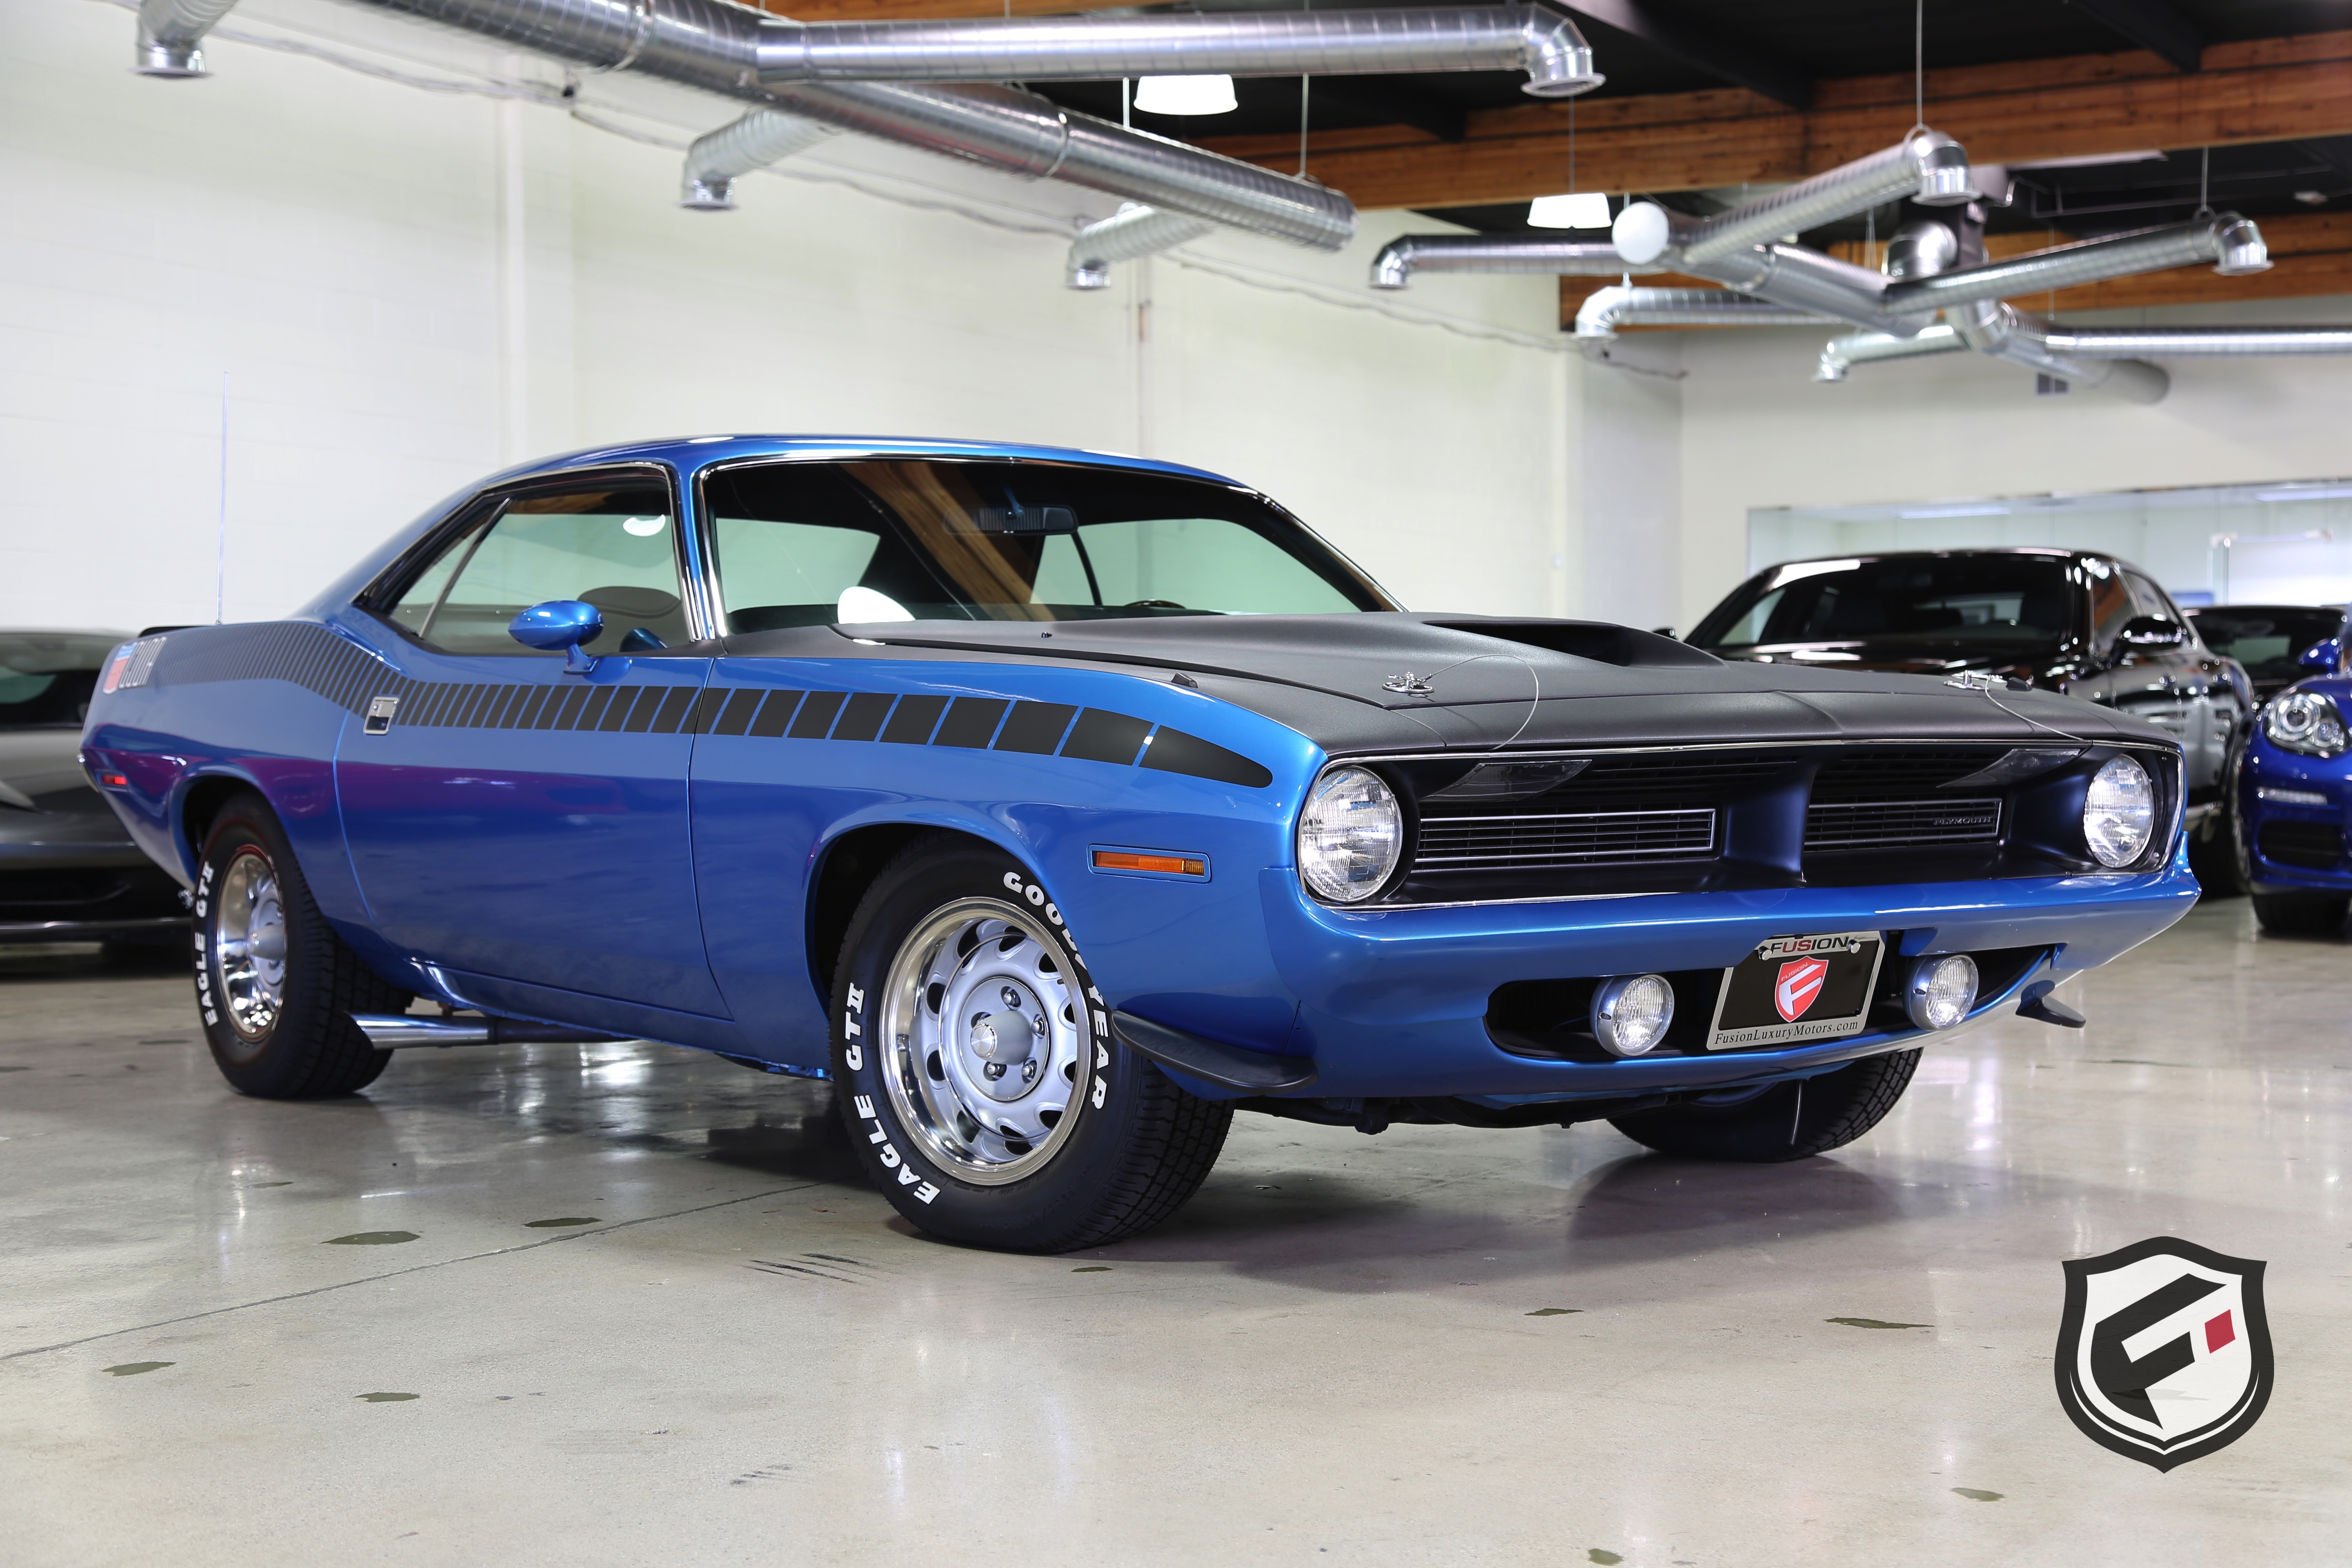 1970 Plymouth Aar Cuda Fusion Luxury Motors